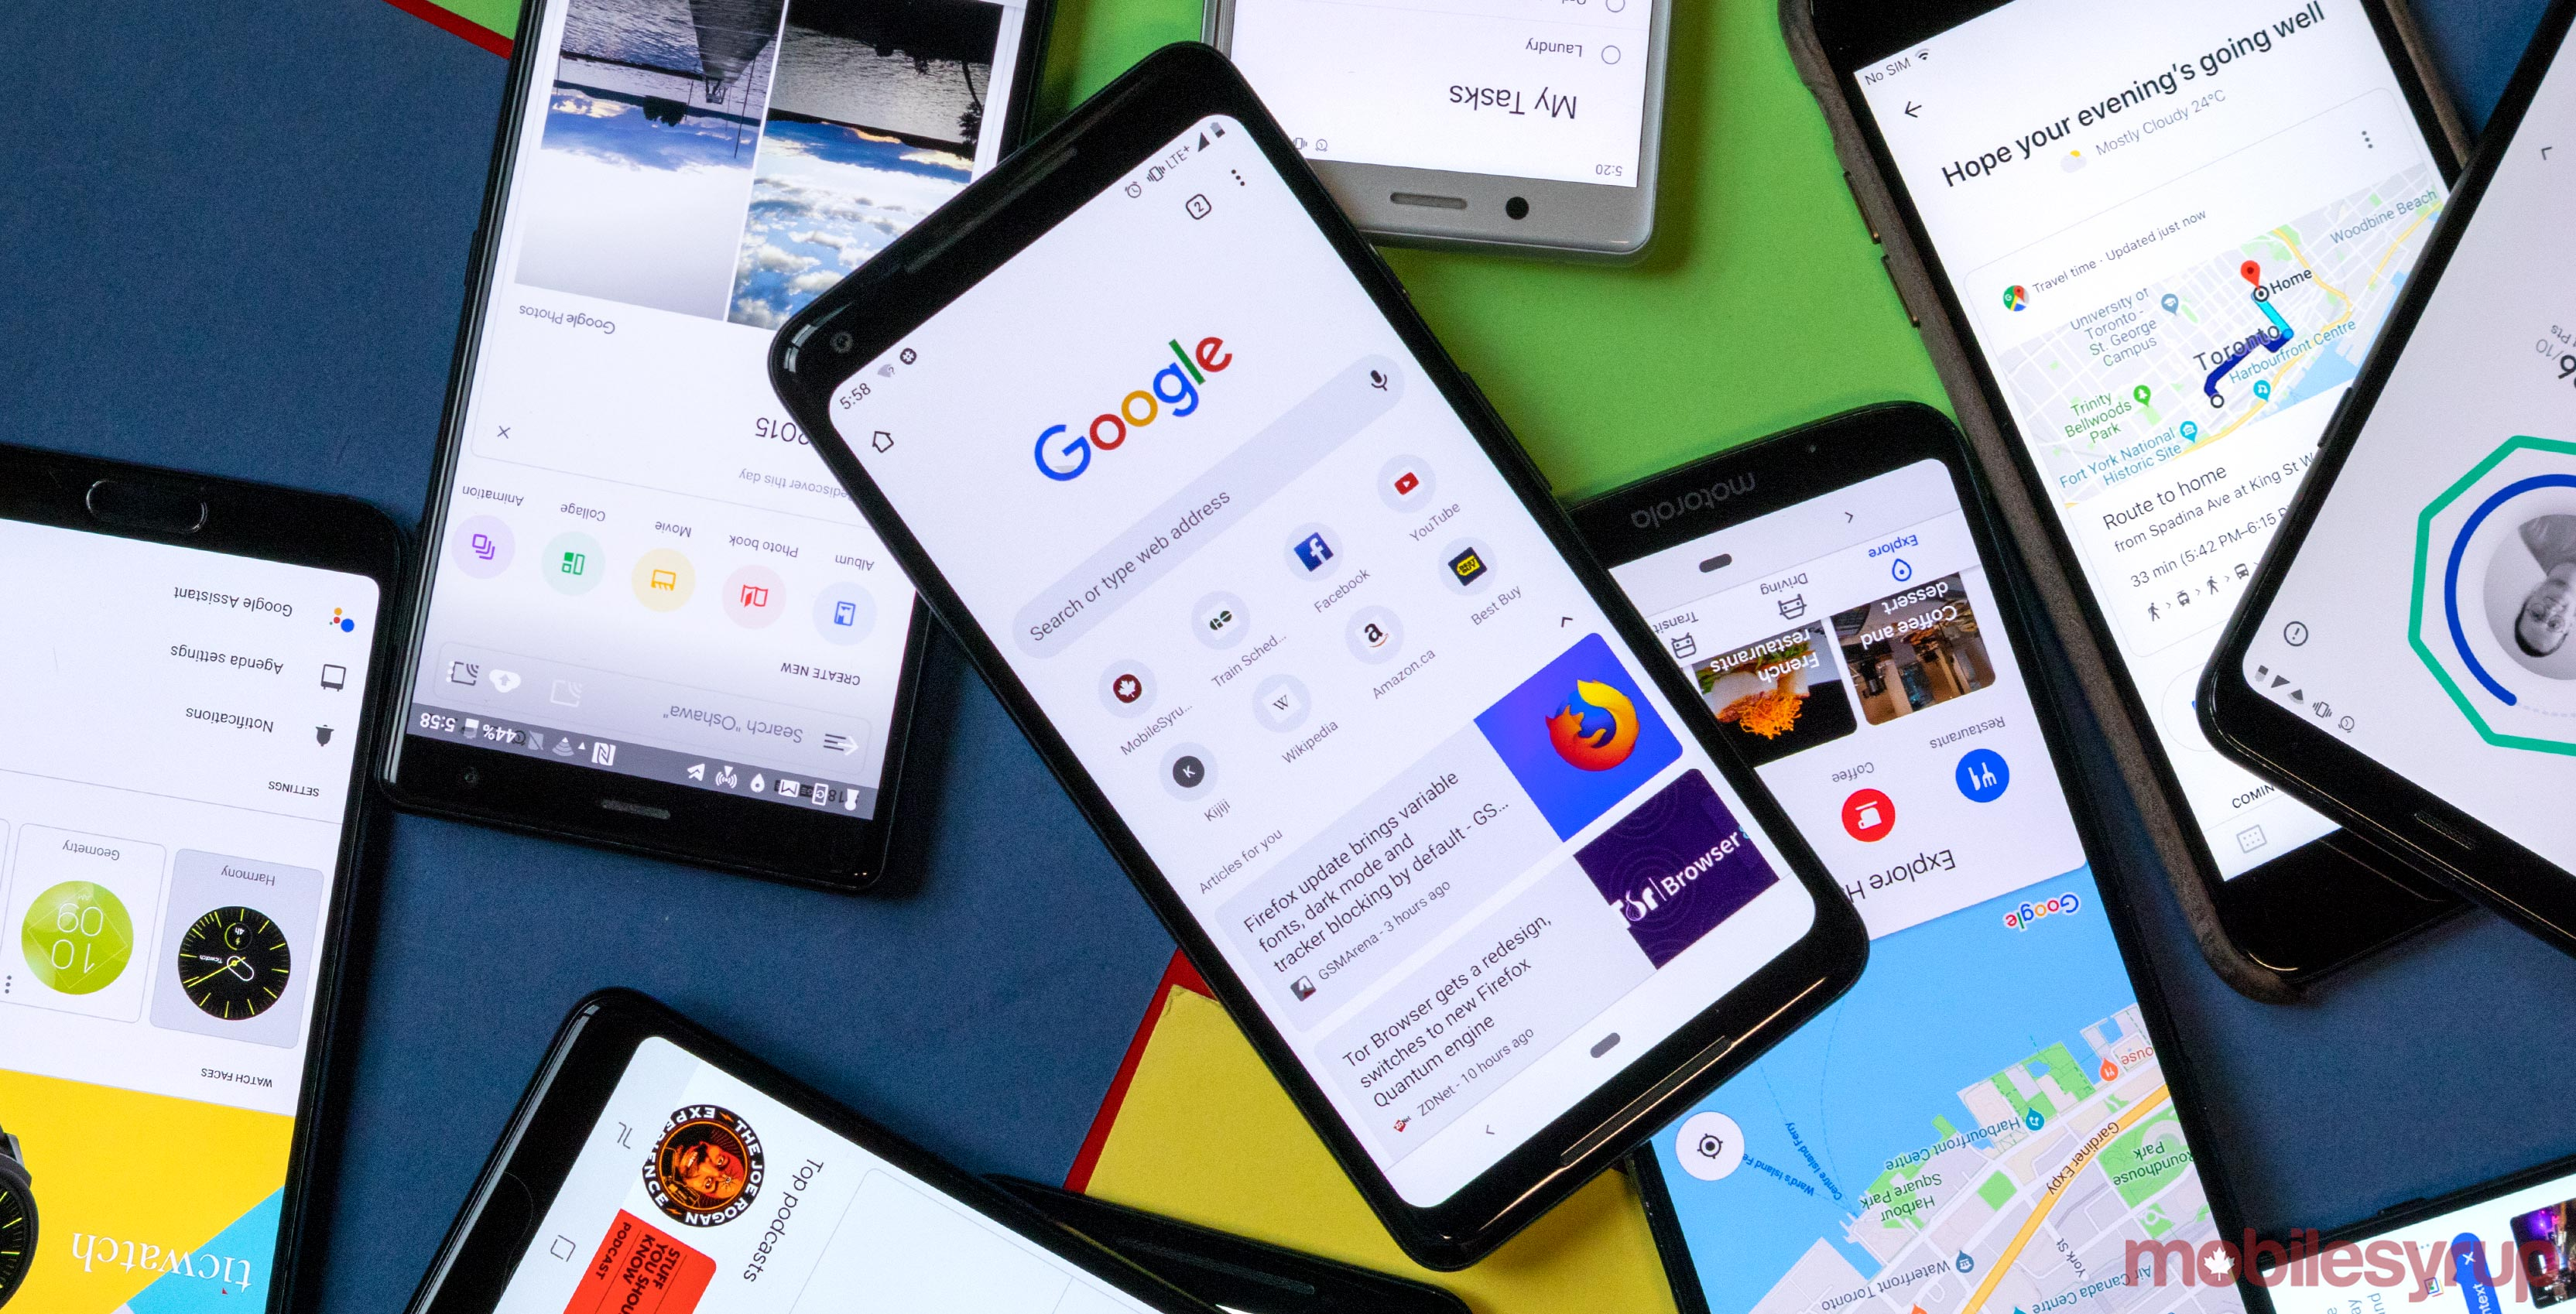 a9d5dd475dec5 It s been four months since Google shared its modern vision for Material  Design. The company has done a lot of work since then